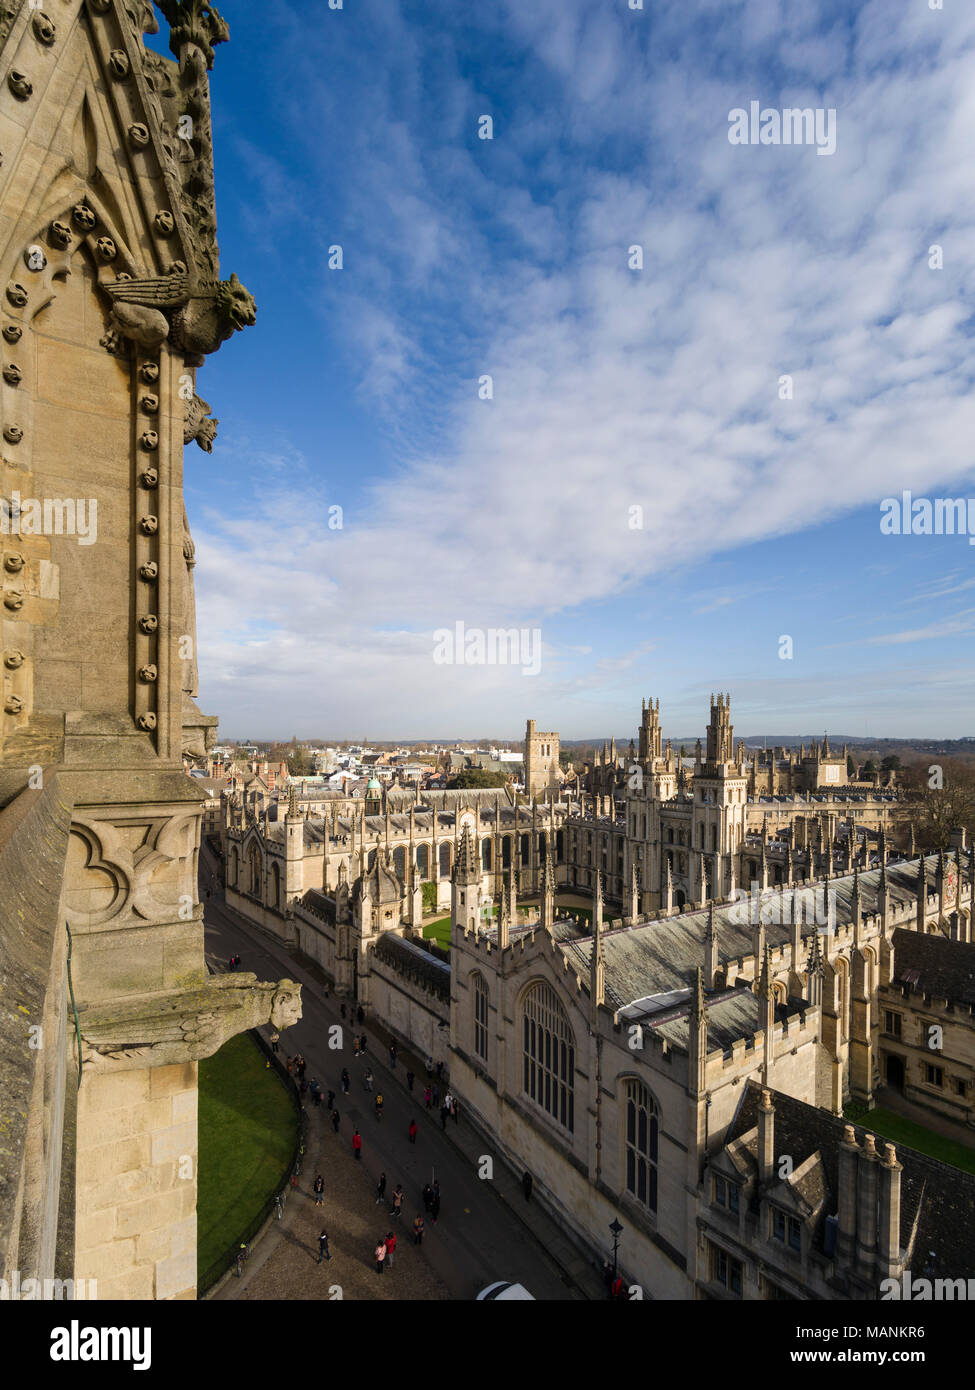 Oxford. England. View of All Souls College from the spire of University Church of St Mary the Virgin. - Stock Image